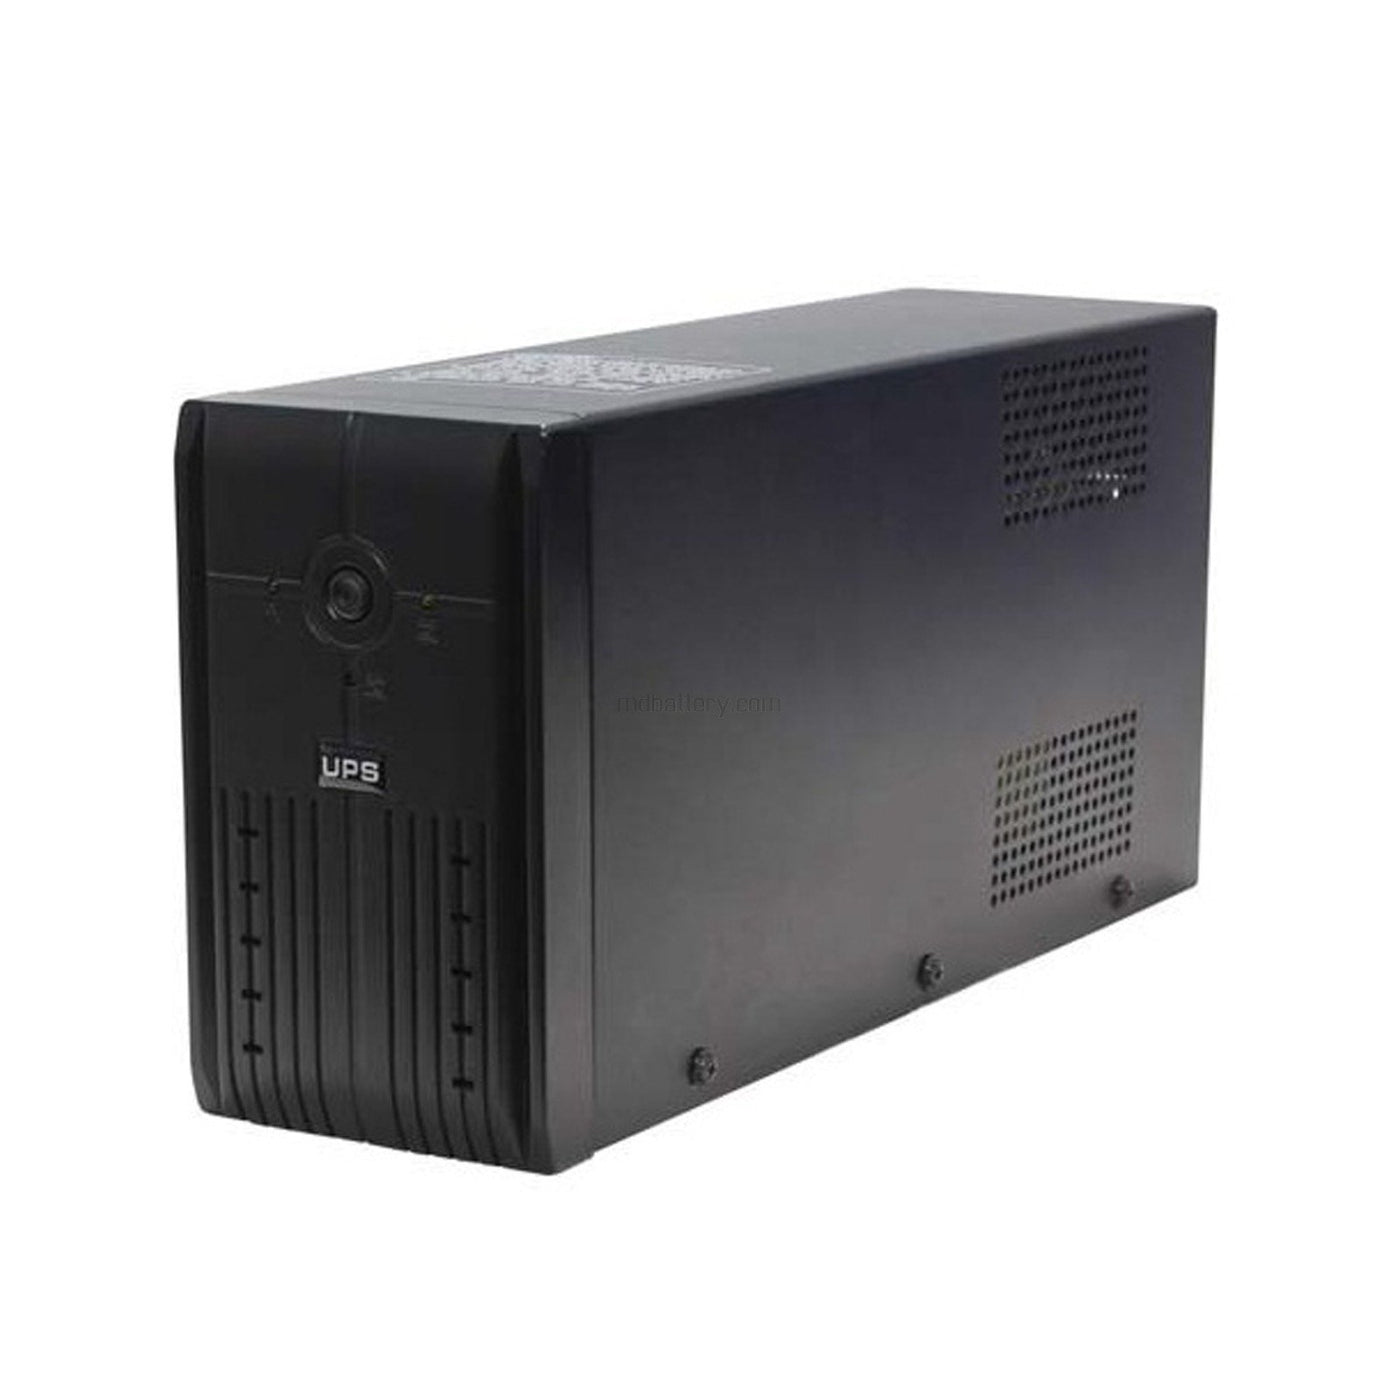 SELF DIAGNOSTIC POWER SUPPLY SYSTEM UPS 650VA Uninterruptible Power Supply  LED 650VA Surge Protected 110VA / 41300